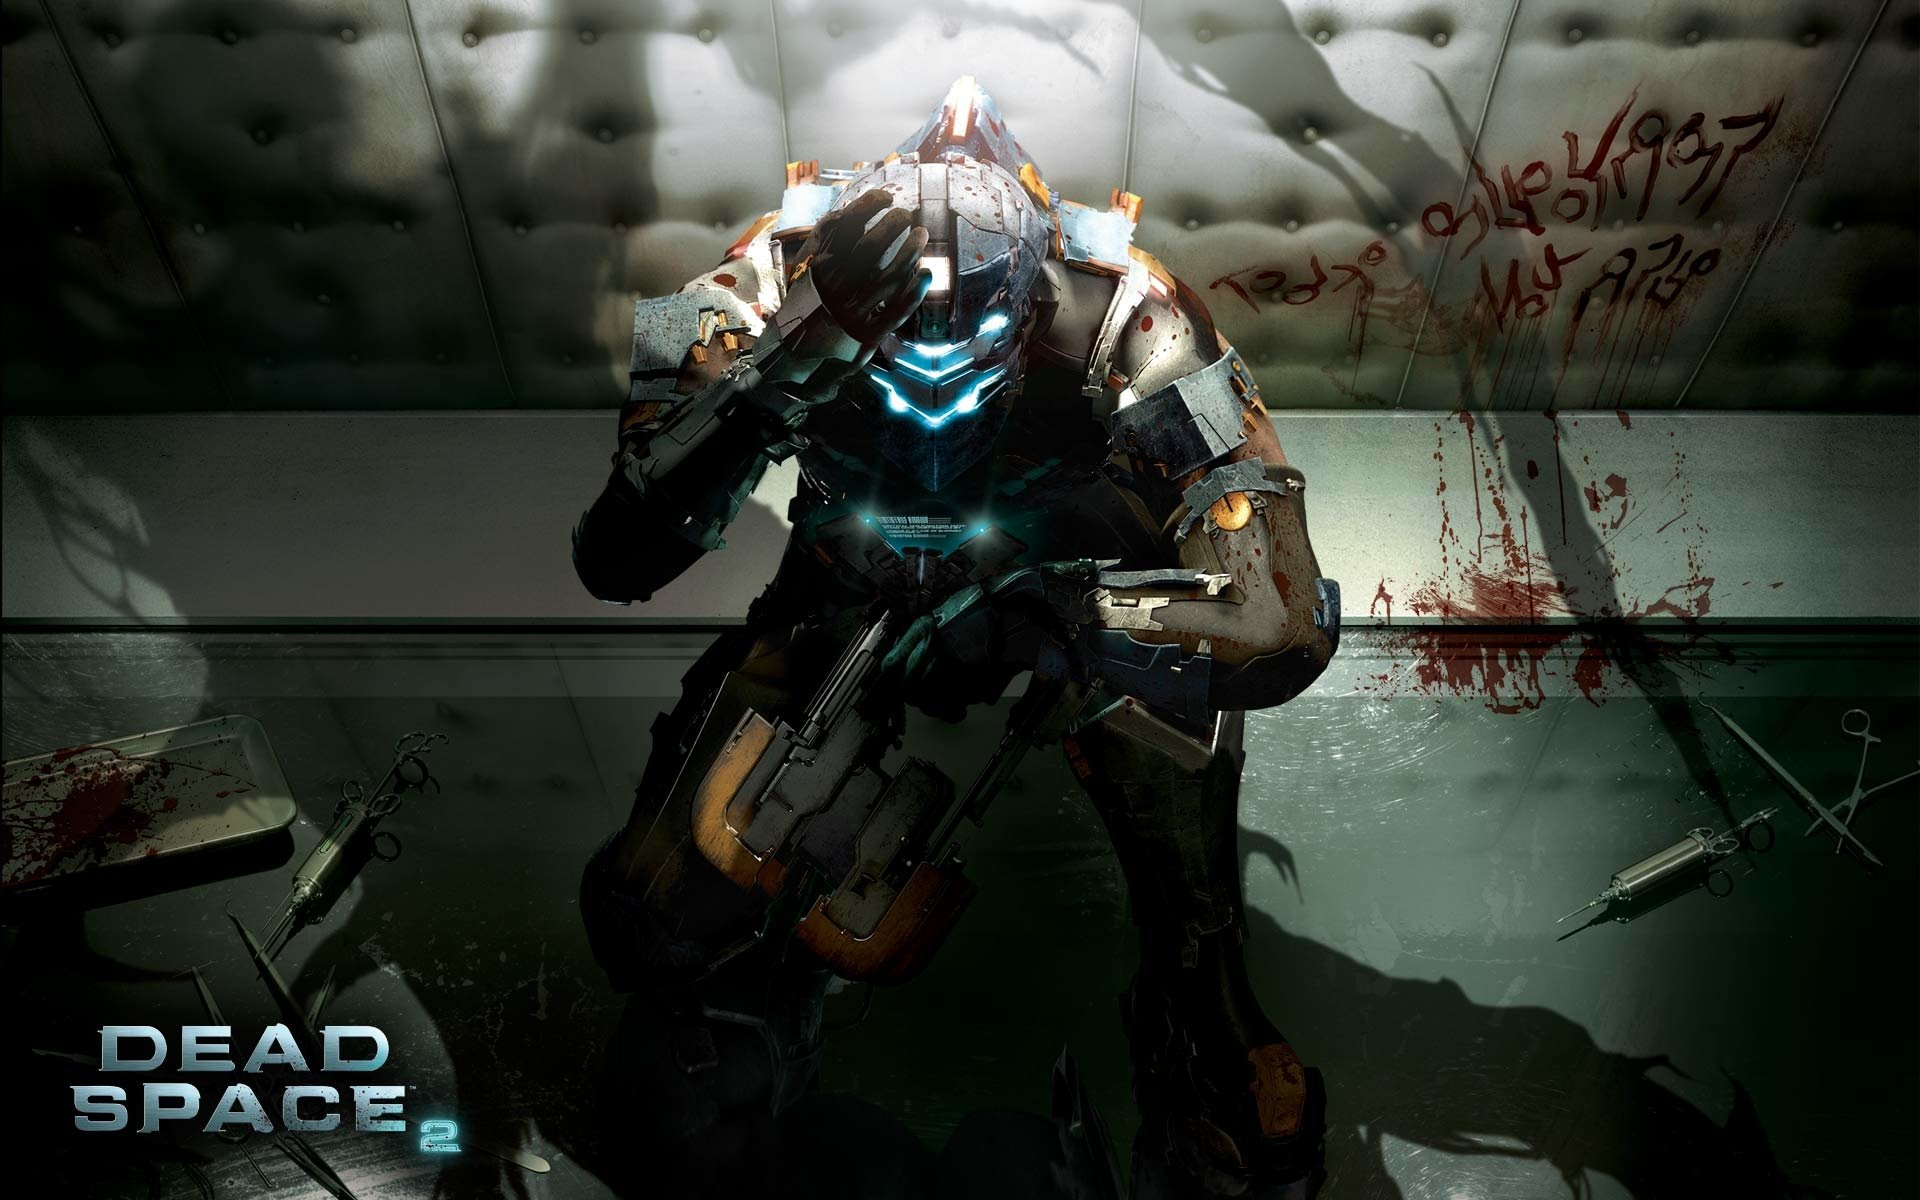 85 Dead Space 2 Hd Wallpapers Background Images Wallpaper Abyss